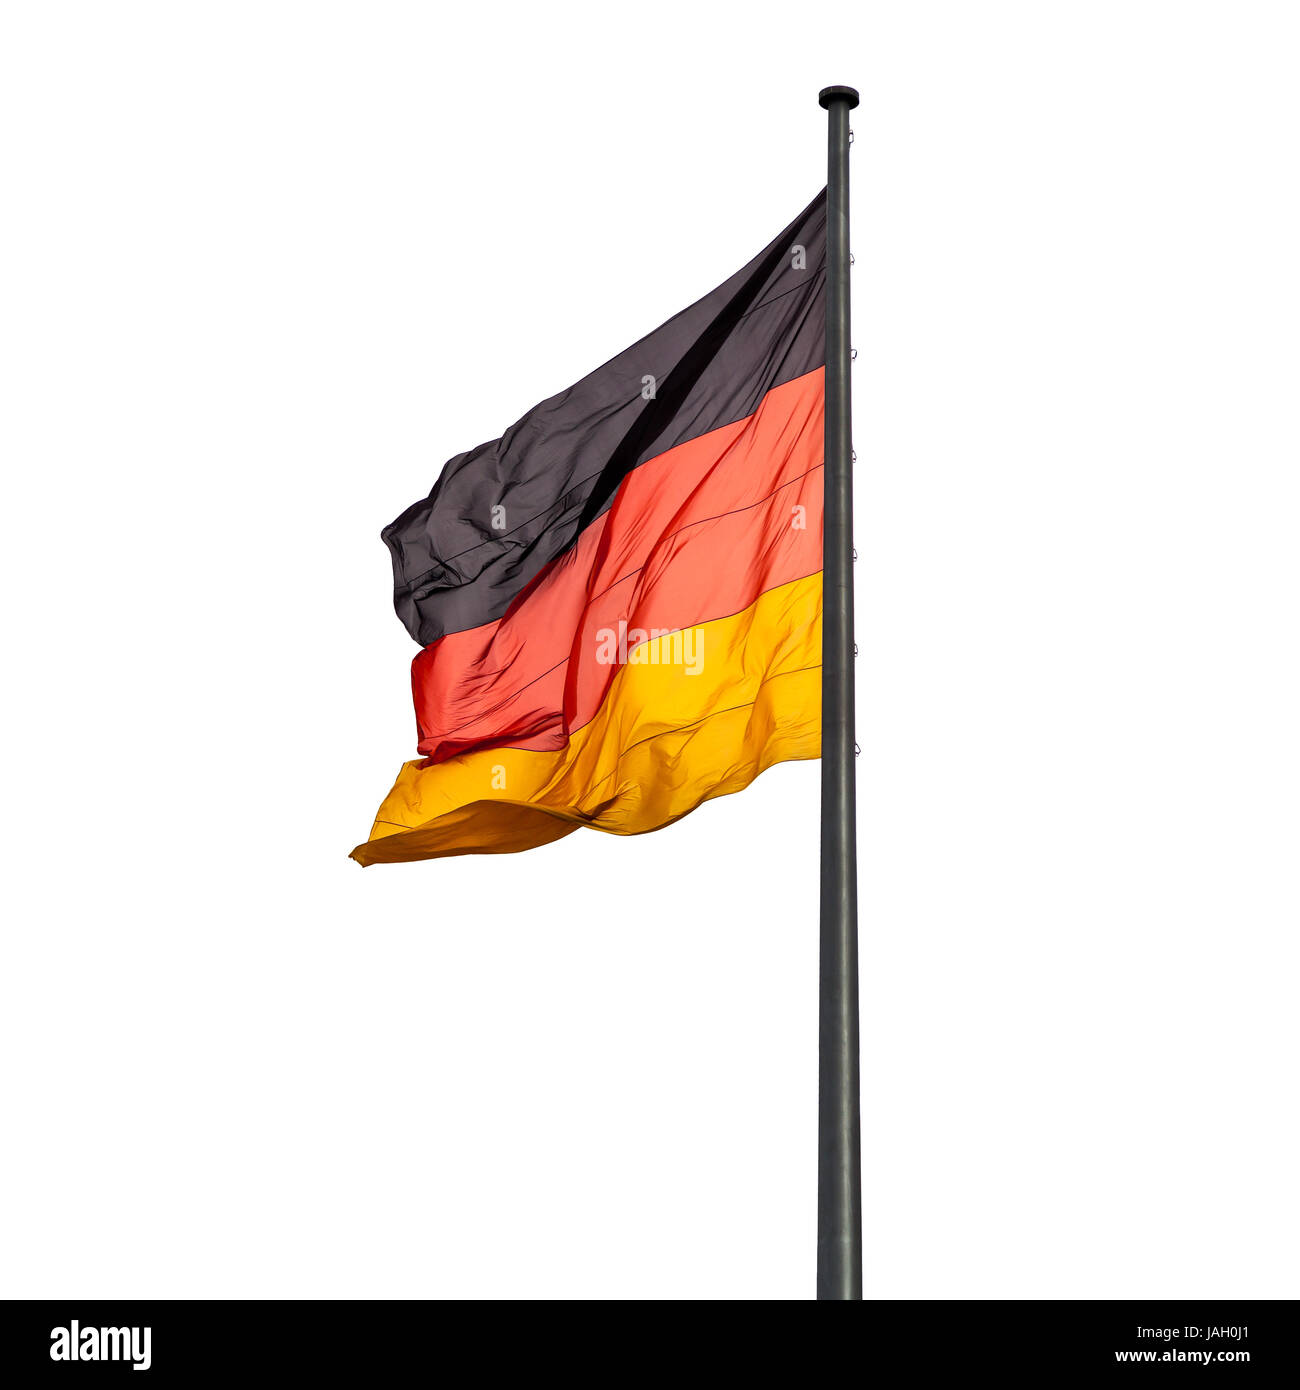 flagpole with state flag of Germany outdoors - Stock Image